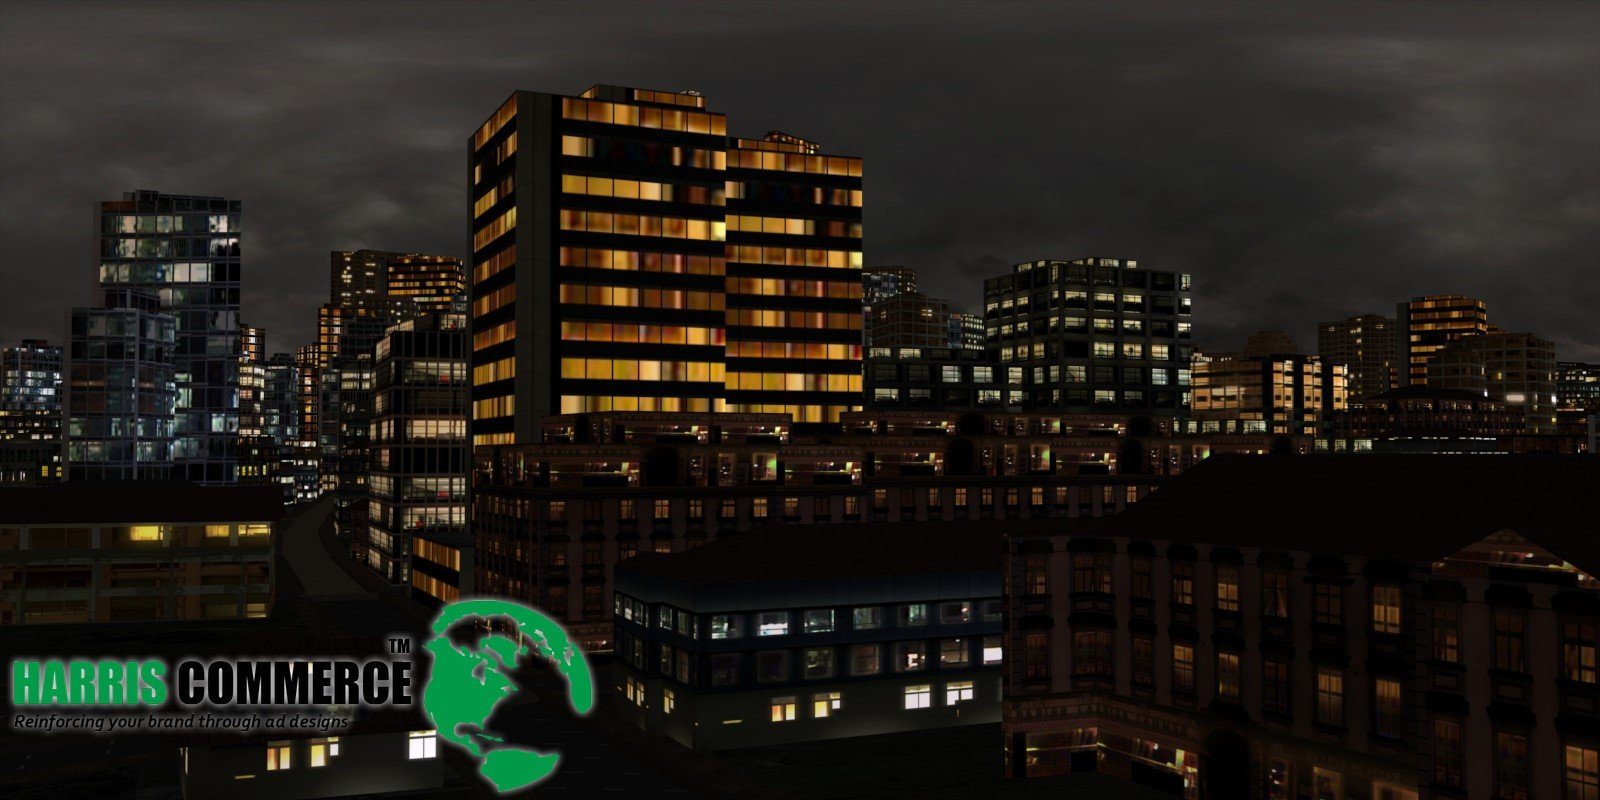 3D still animation - night buildings in the city